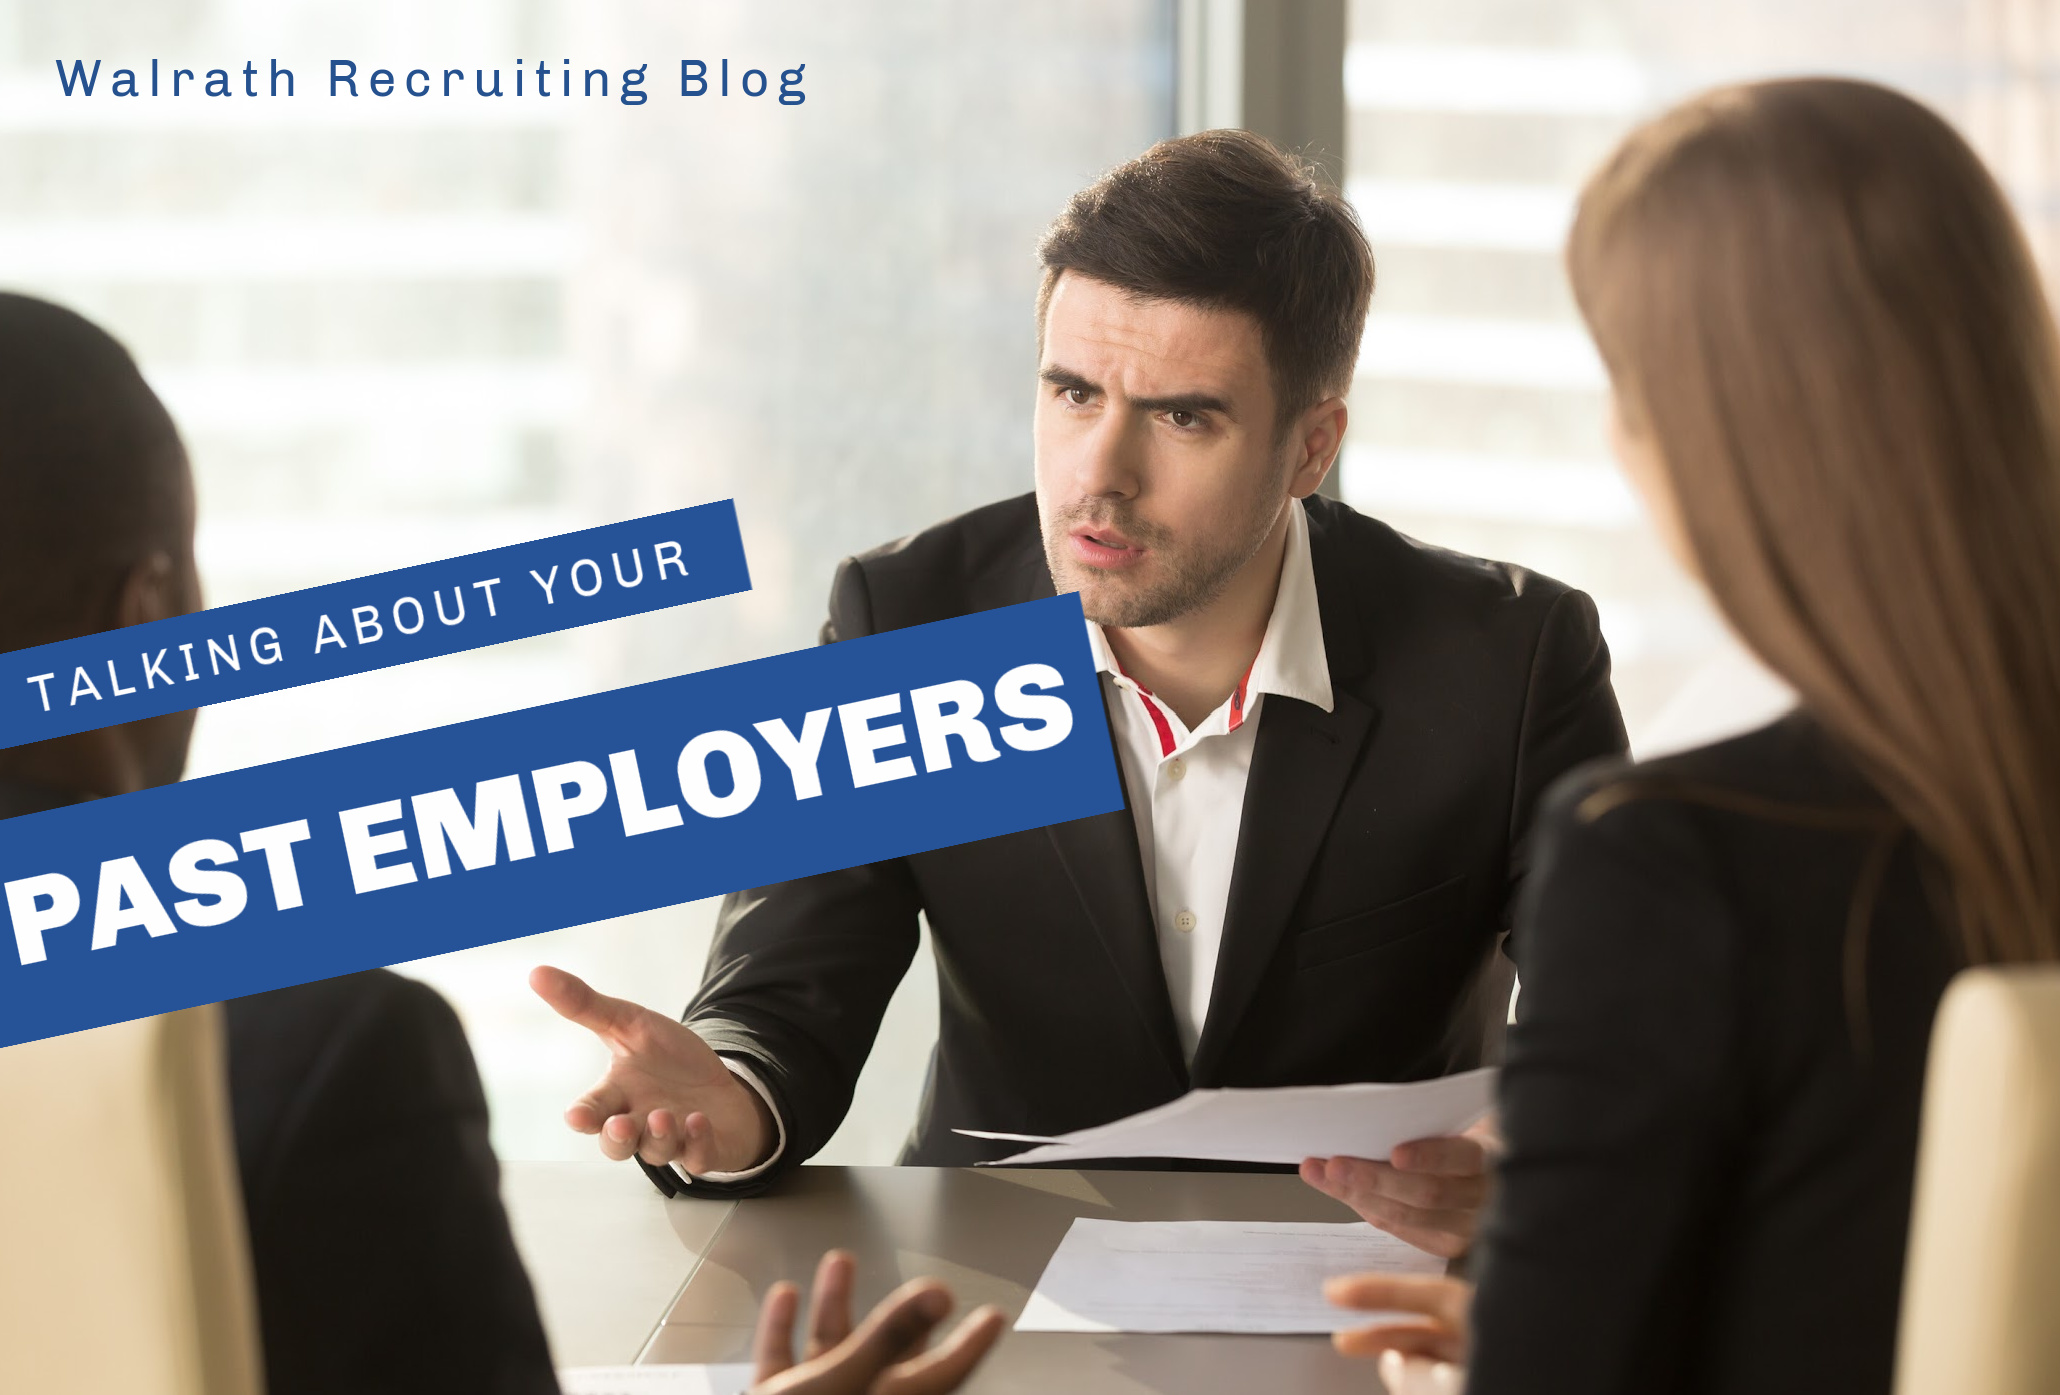 Past employers is something you will likely have to do during any interview. Find out how, here.